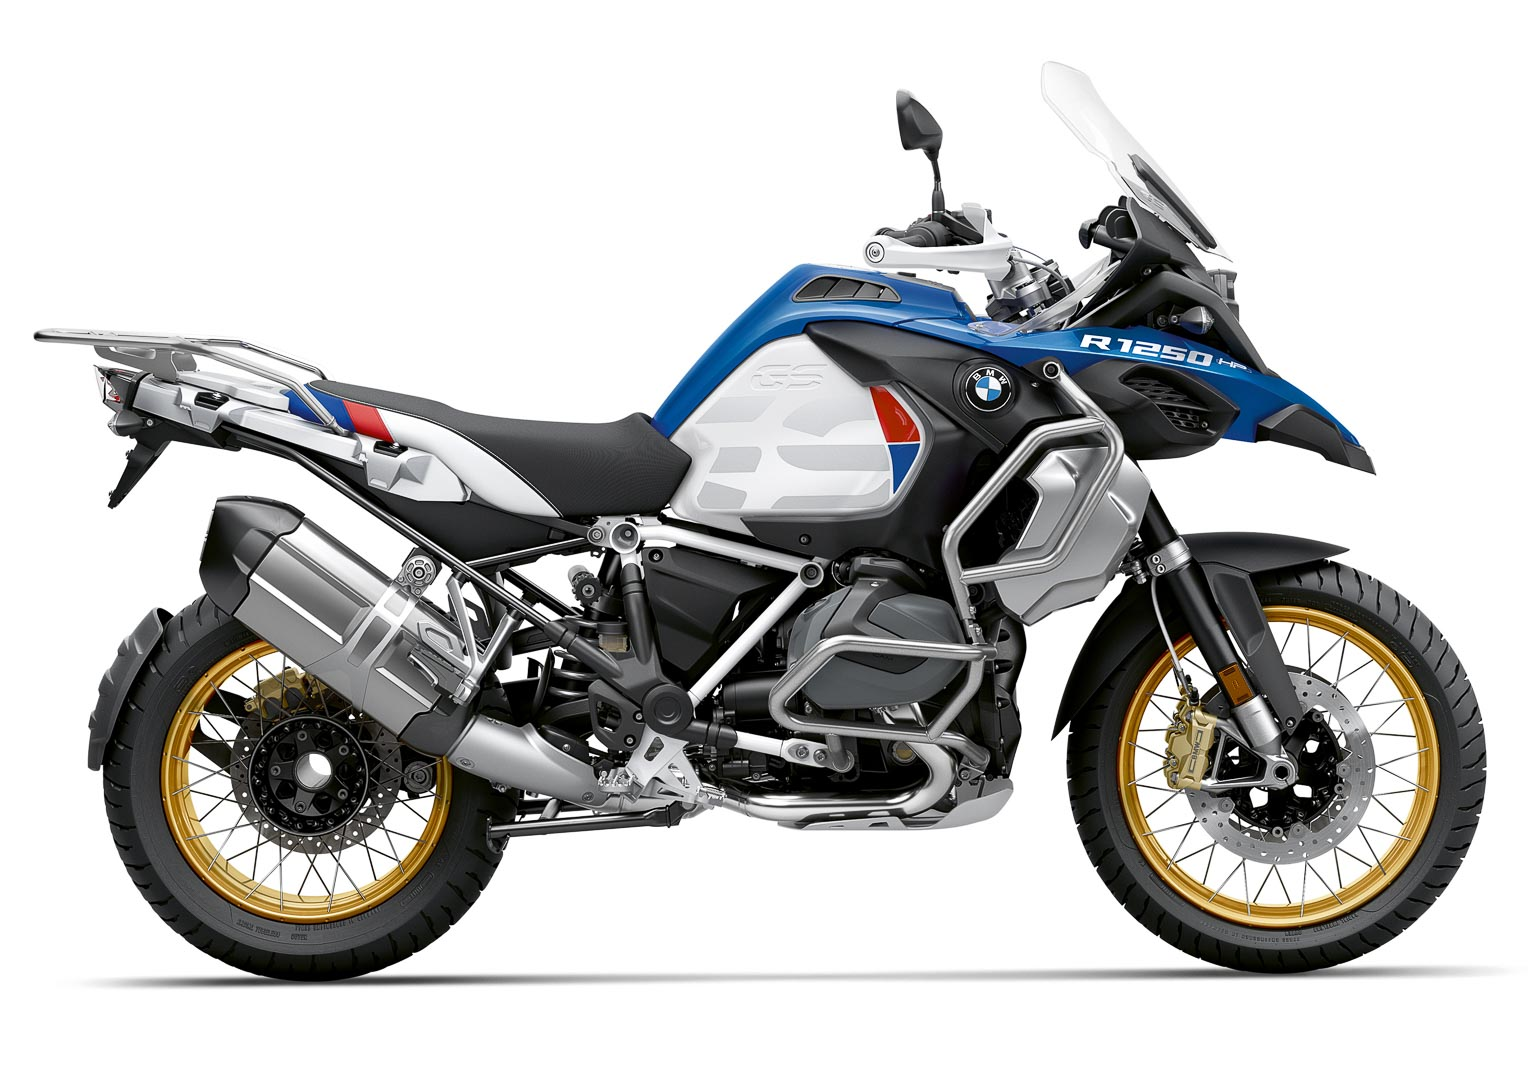 2020 BMW R 1250 GS Adventure Buyer's Guide - MSRP